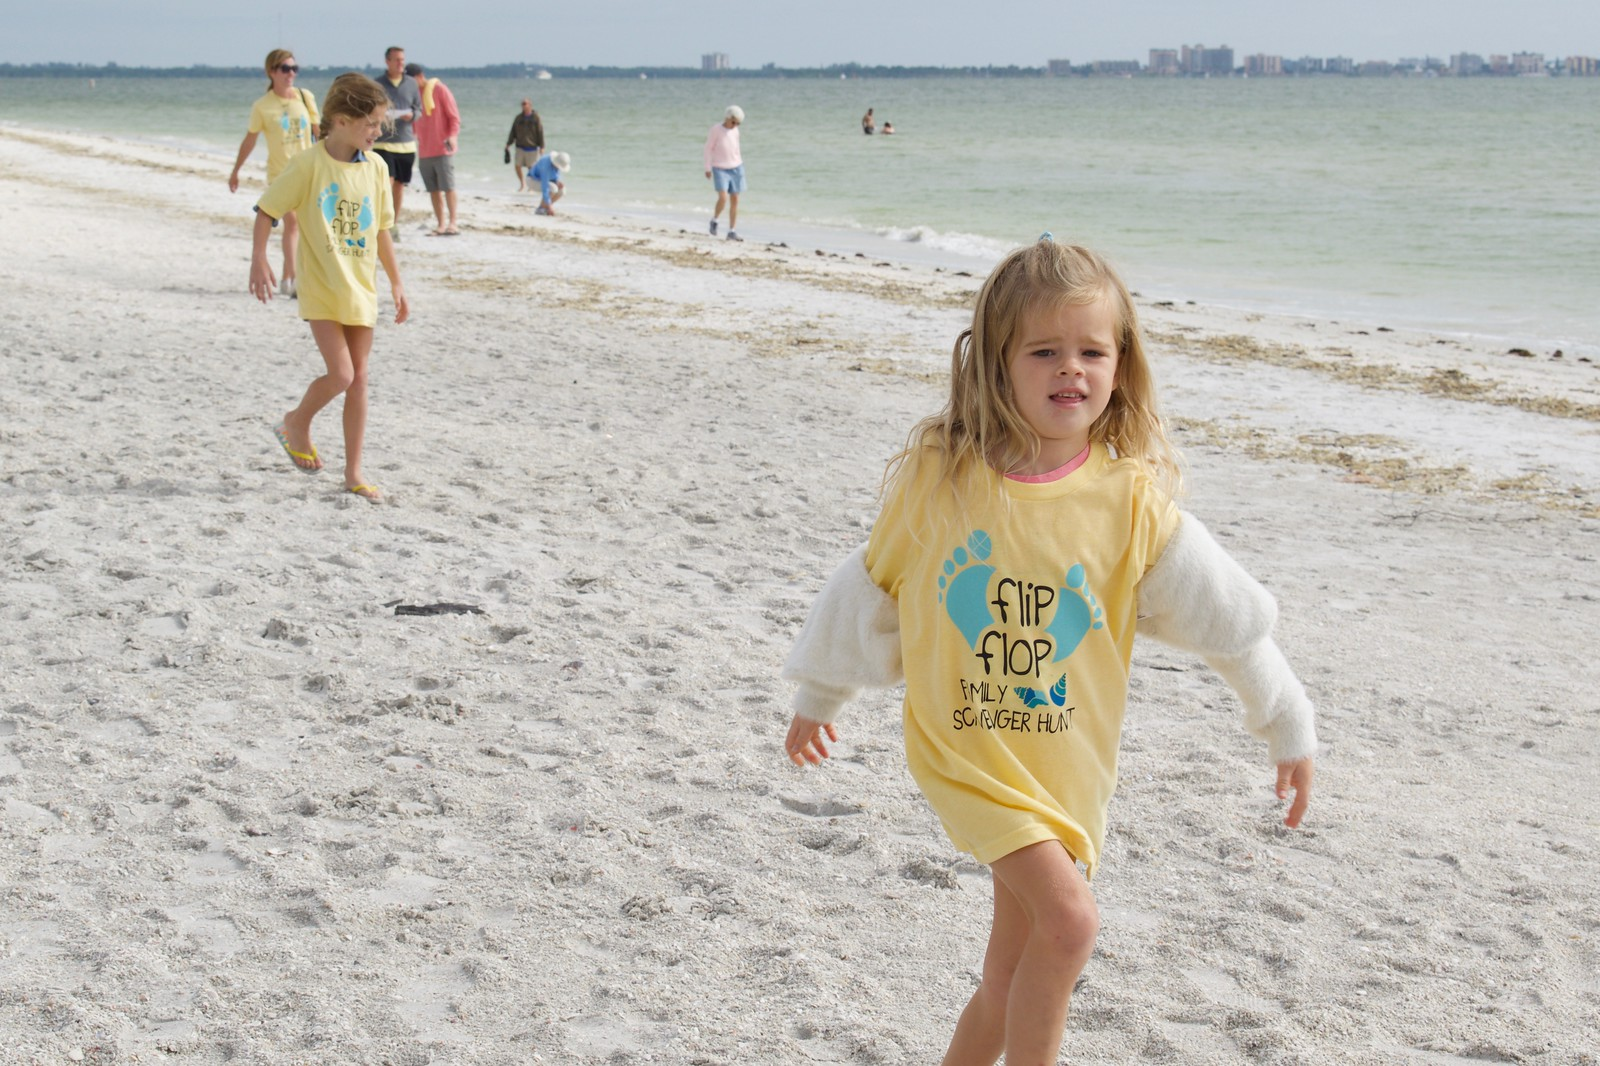 Kate and On Island helped Sanibel Sea School produce a special edition t-shirt for the first annual Flip Flop Family Scavenger Hunt in 2018.